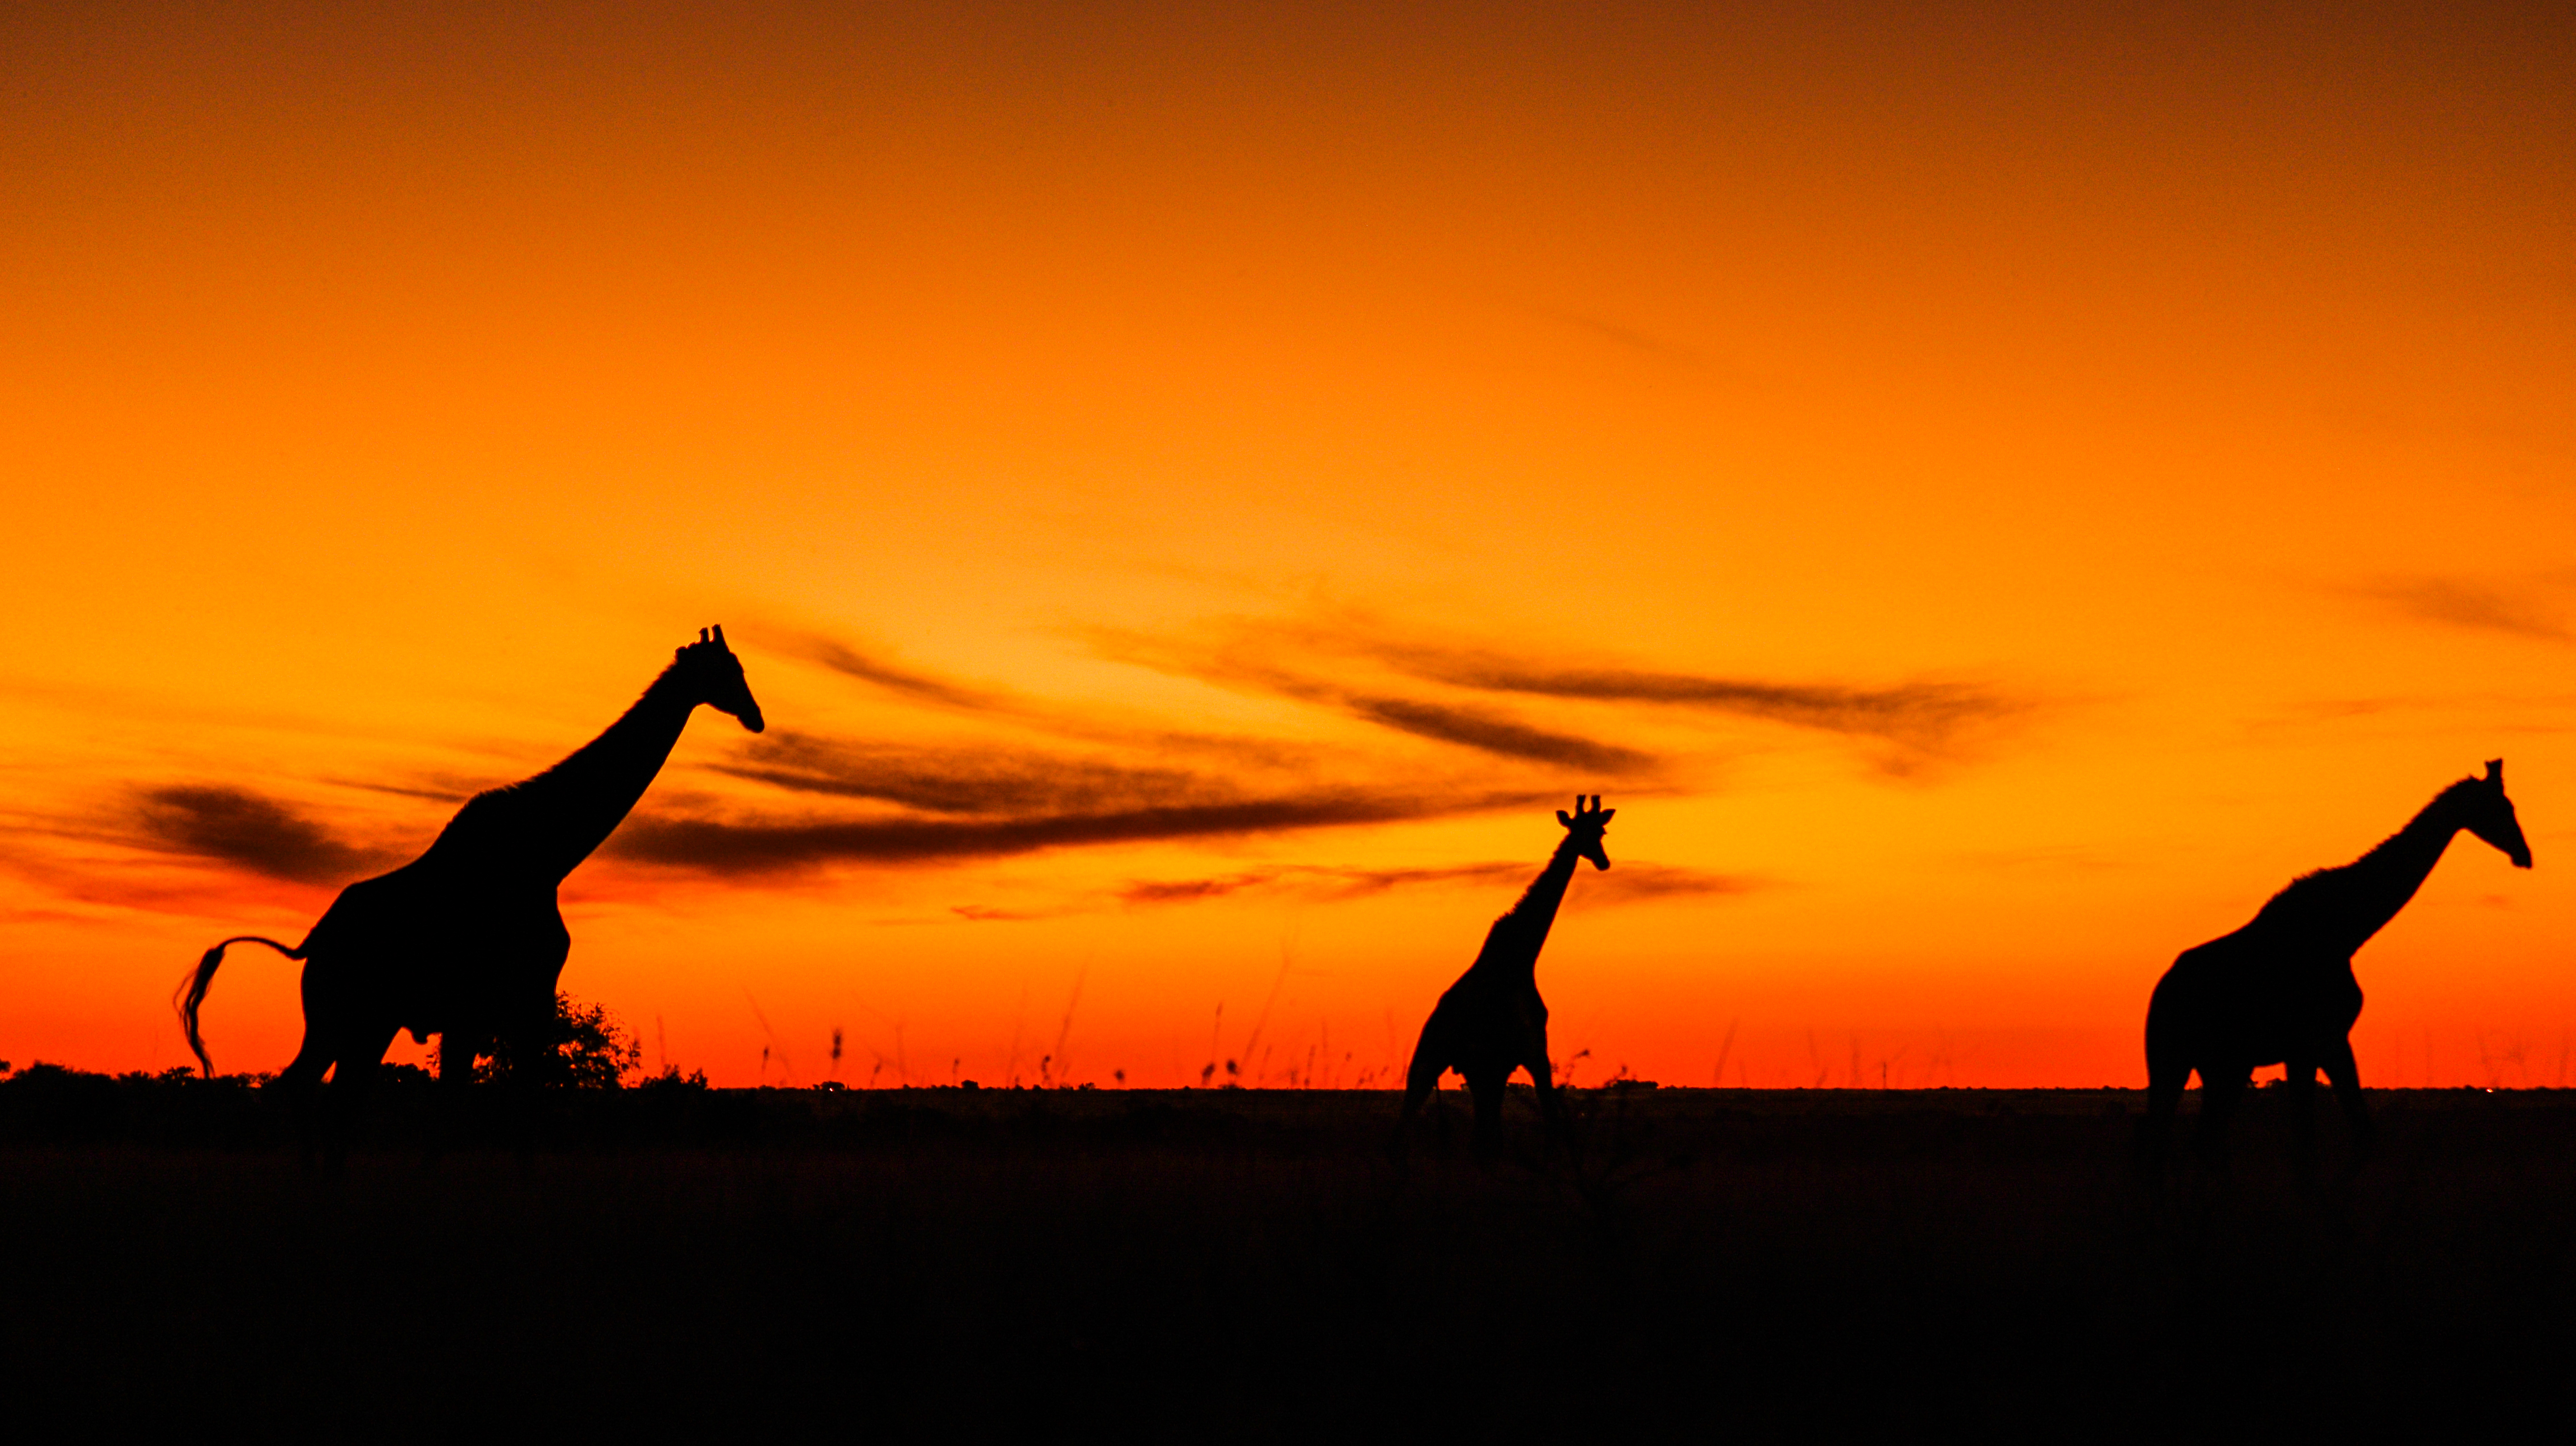 Giraffes and sunsets.